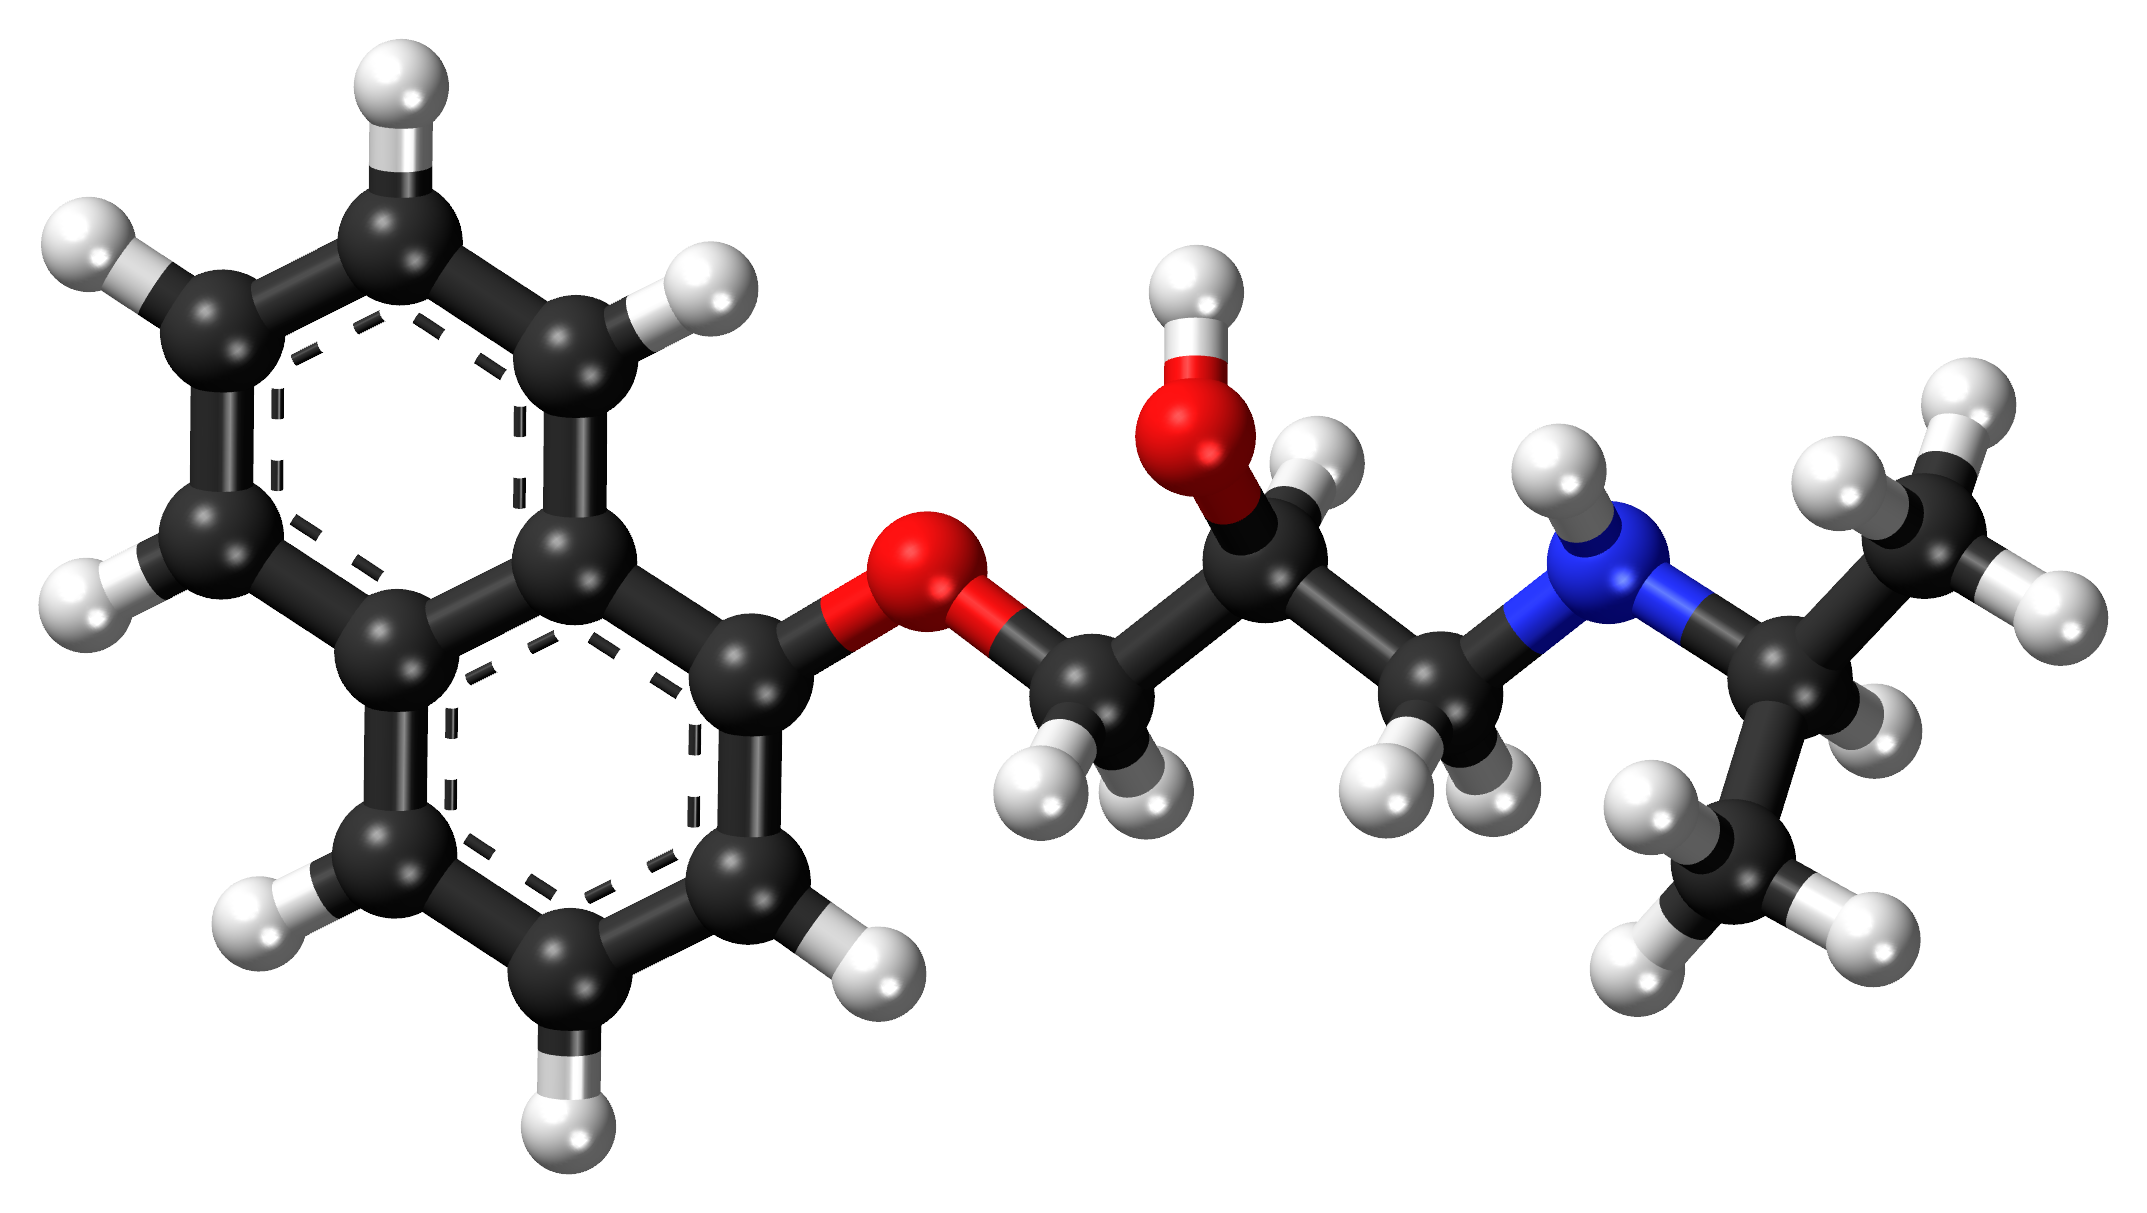 File:Propranolol ball-and-stick model.png - Wikimedia Commons